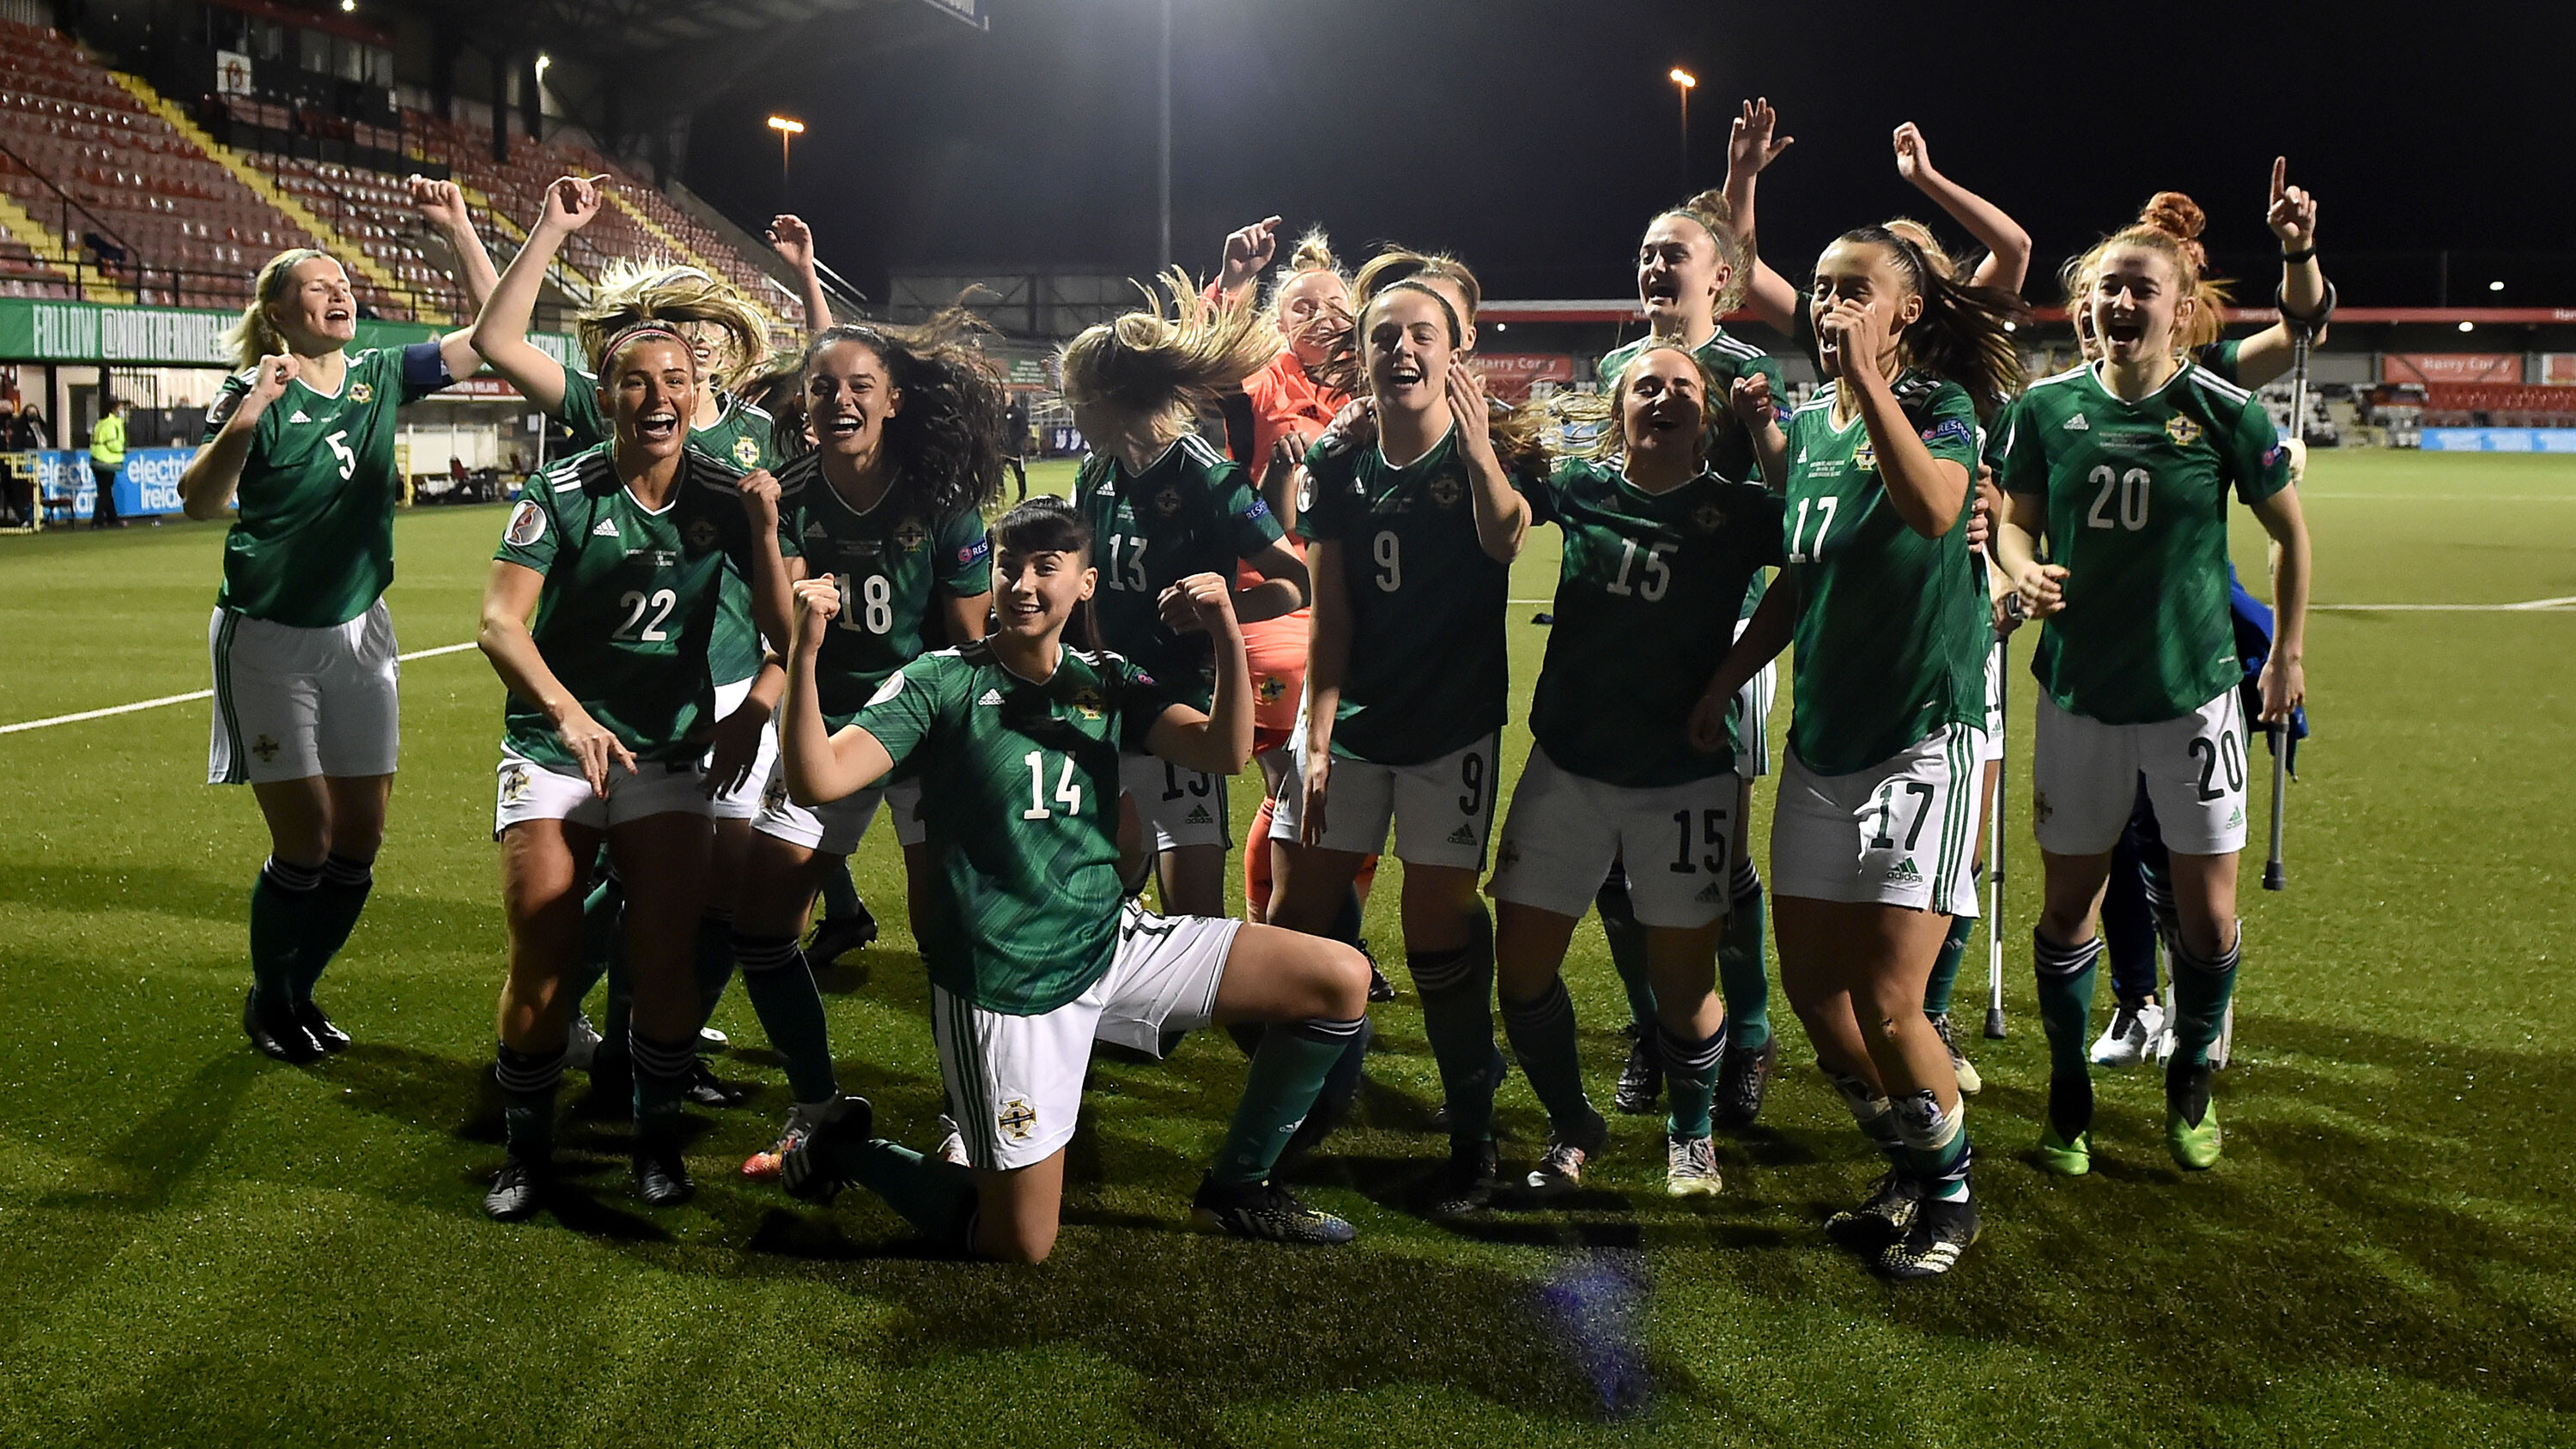 'Imagine how good it could be': Northern Ireland women's footballers ready to seize their moment